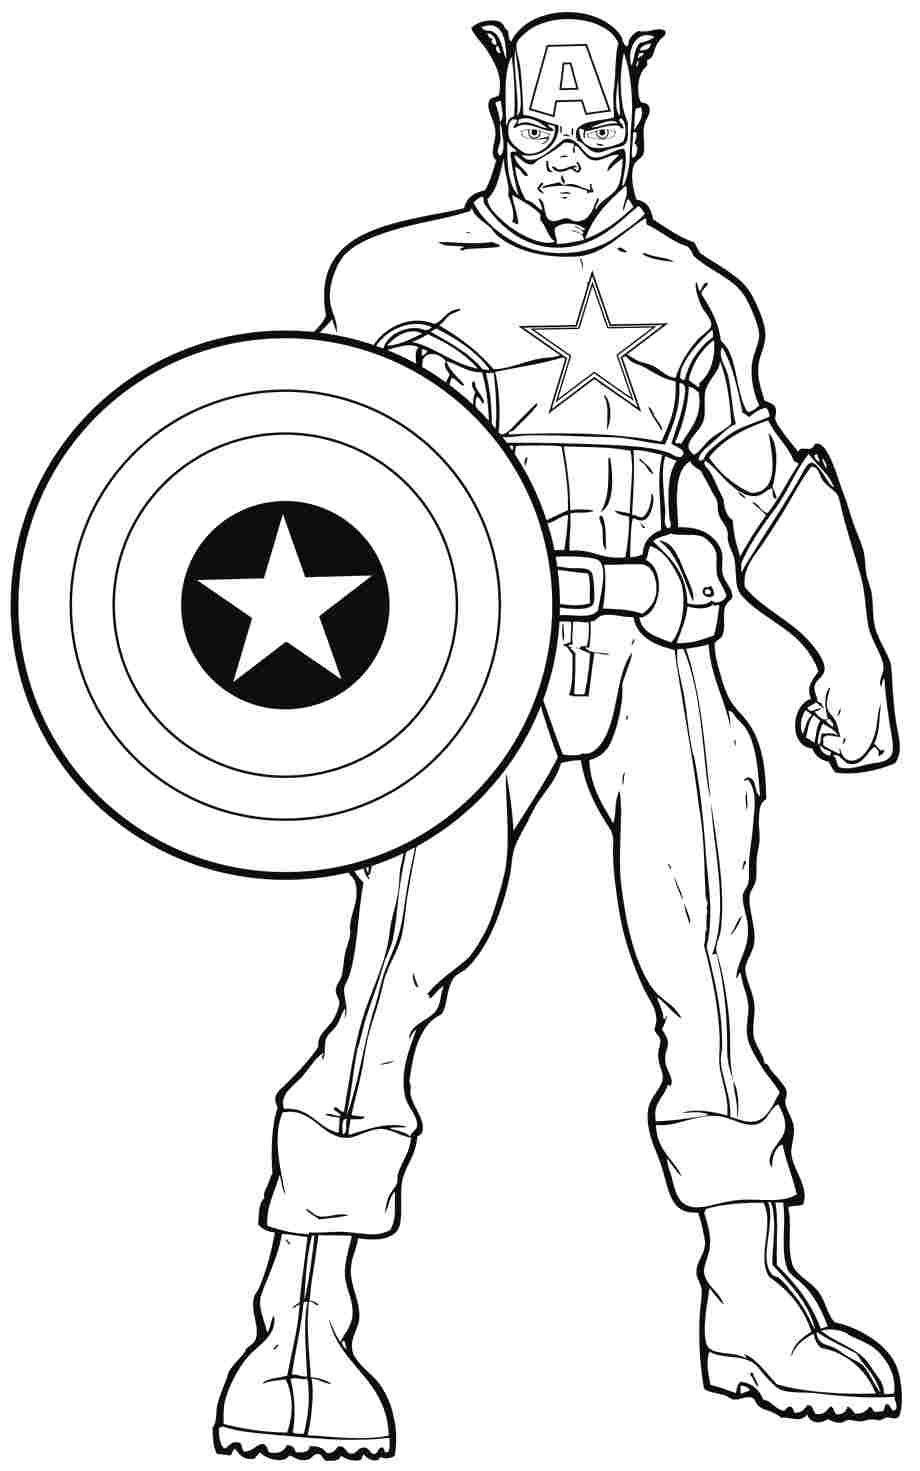 Super Heroes Coloring Pages Super Hero Coloring Pages Marvel Heroes